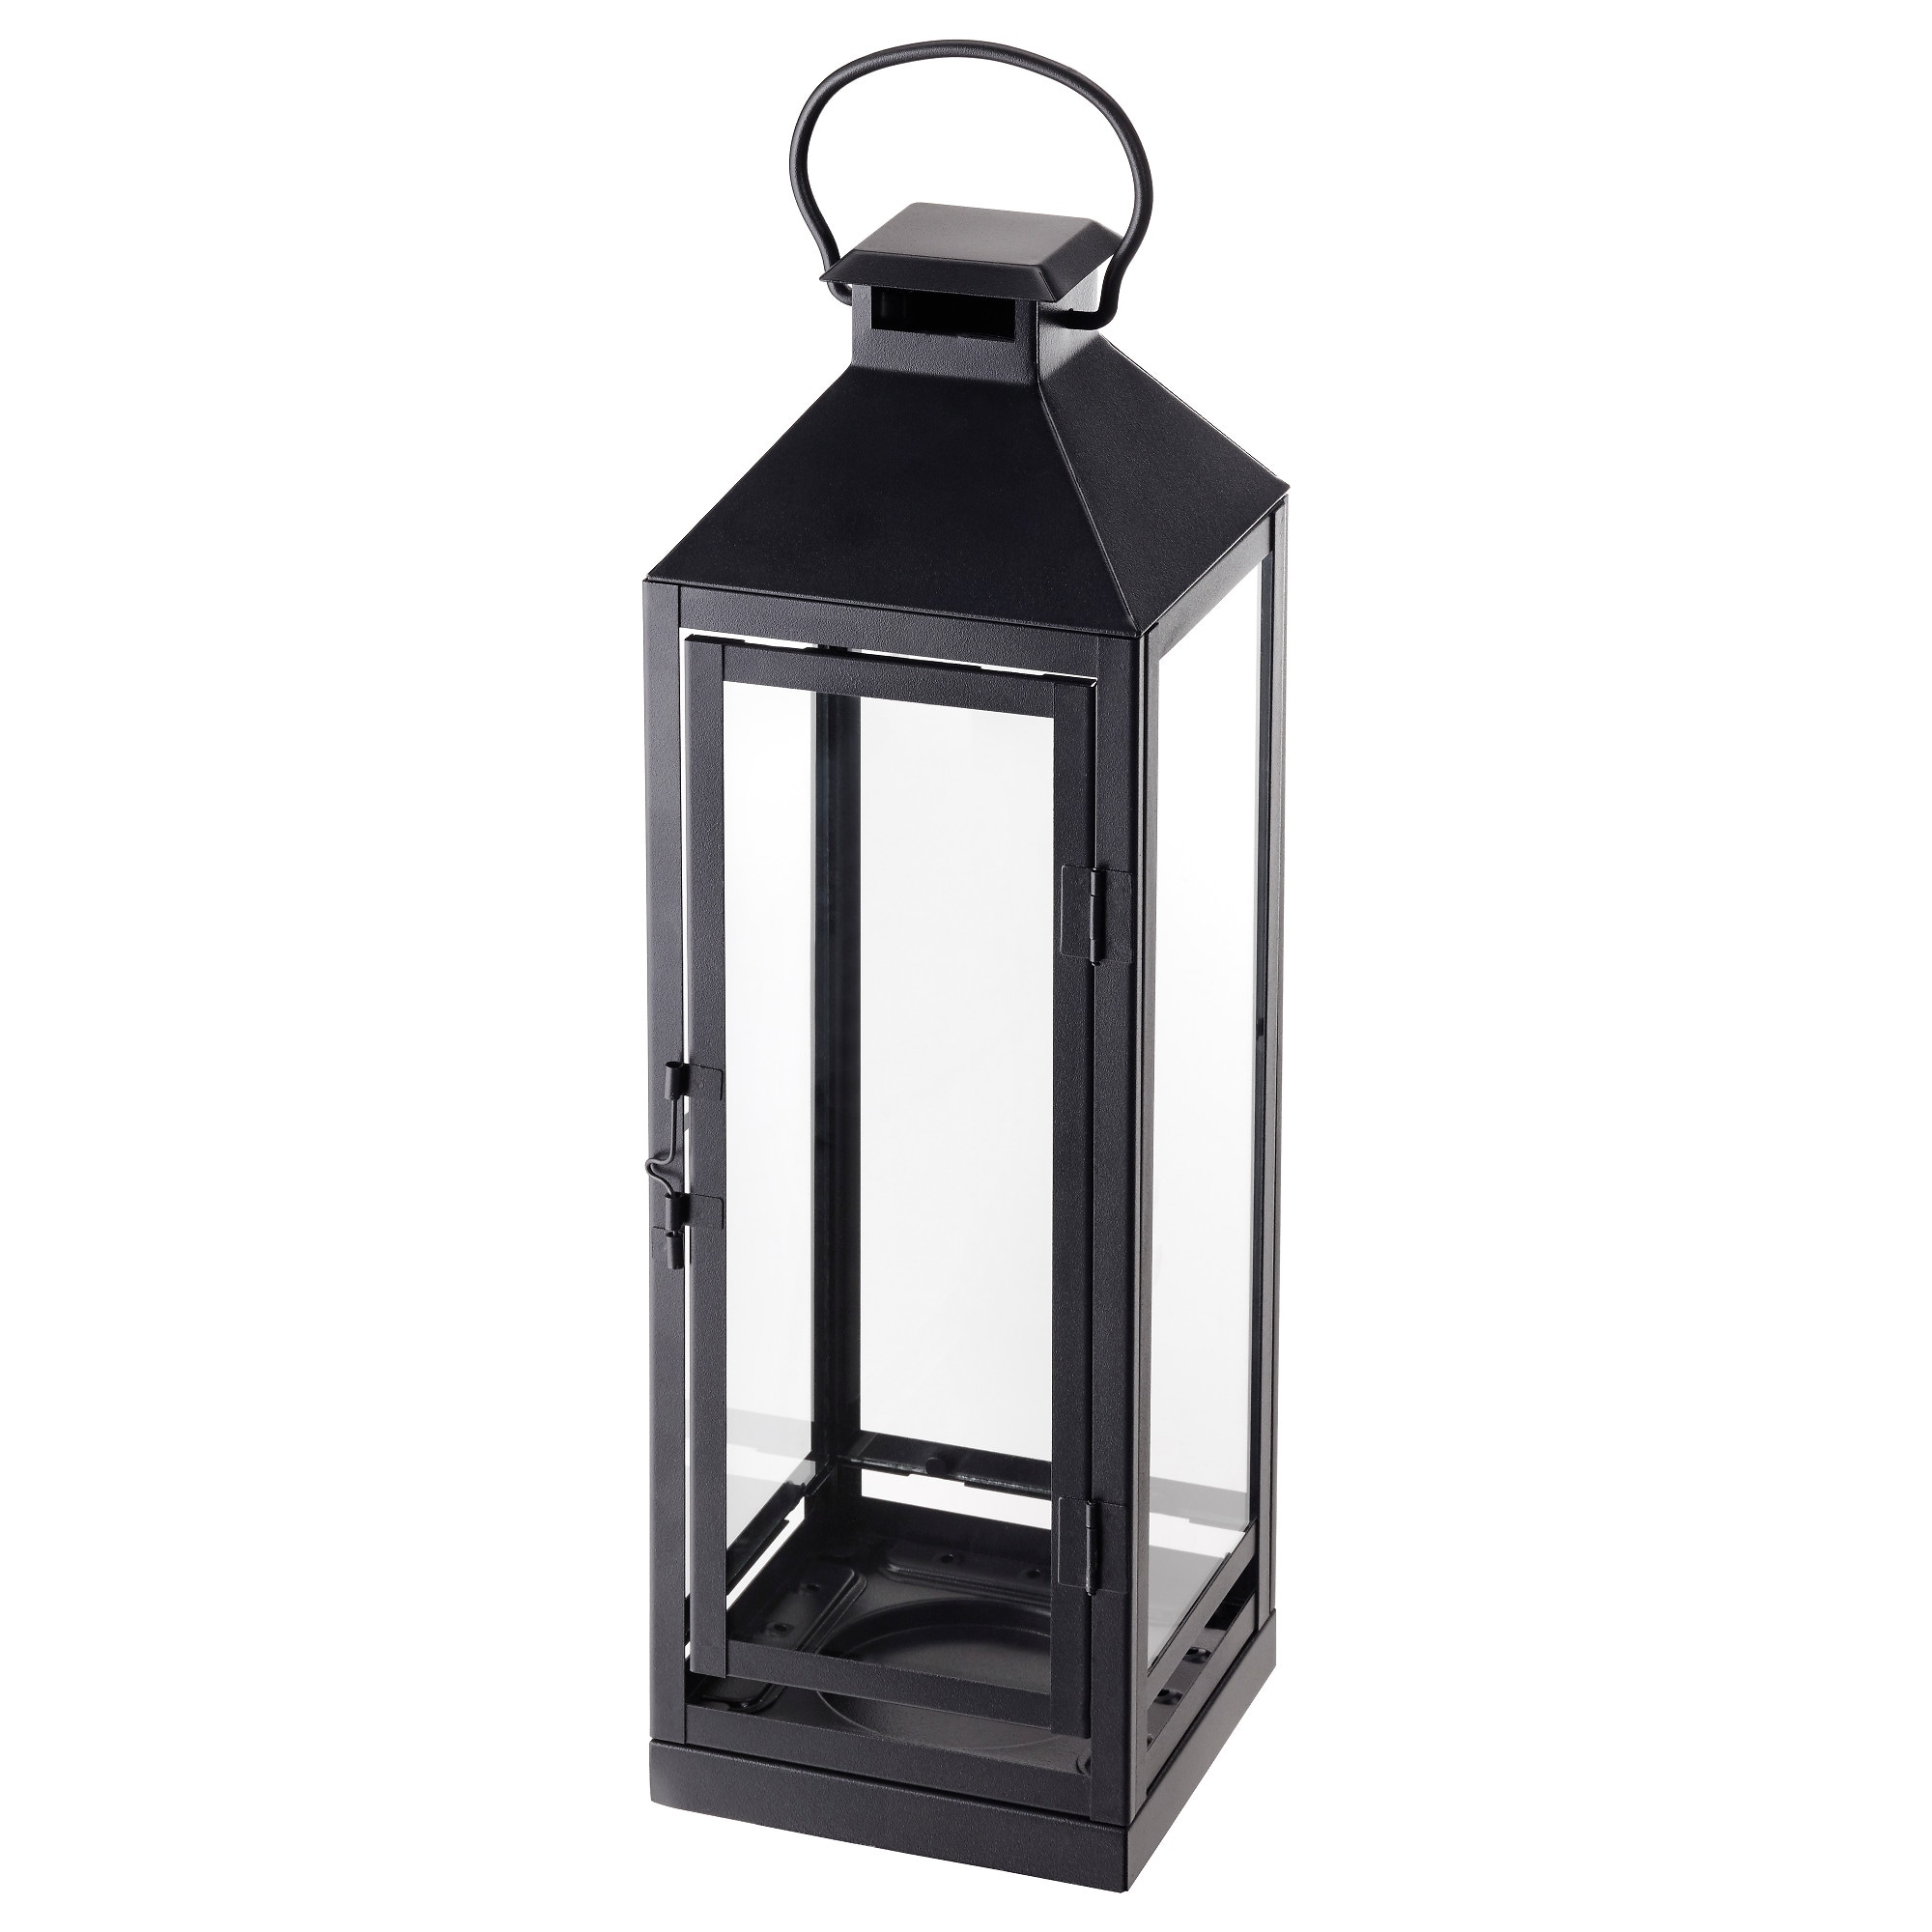 Lanterns & Candle Lanterns - Ikea throughout Outdoor Memorial Lanterns (Image 11 of 20)